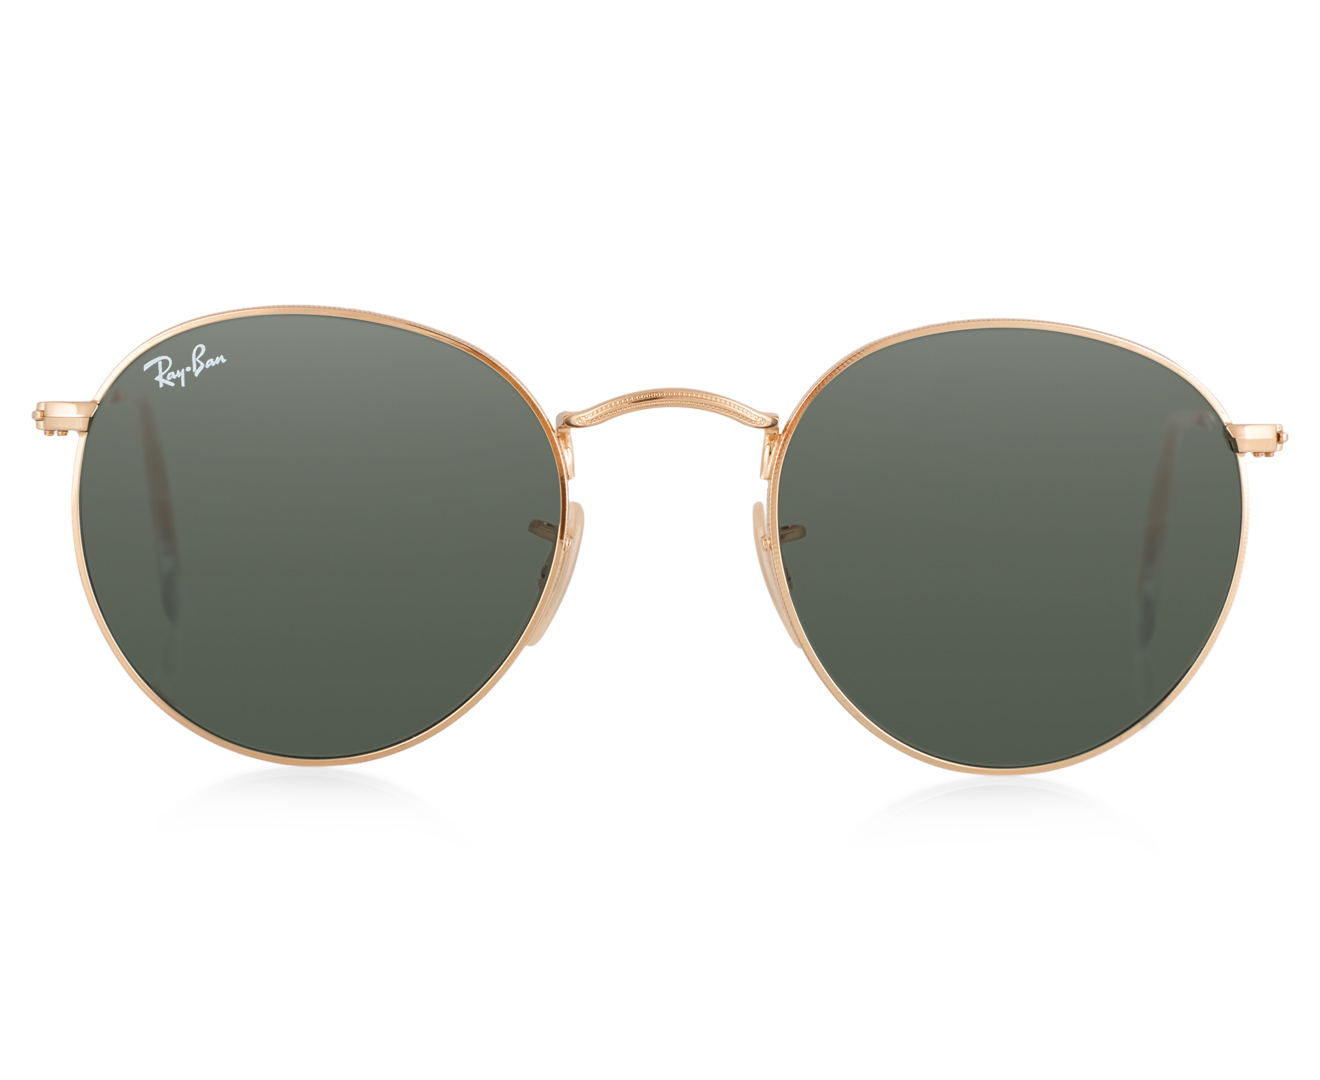 c5ab273328d Ray-Ban Classic Round Sunglasses - Gold Green